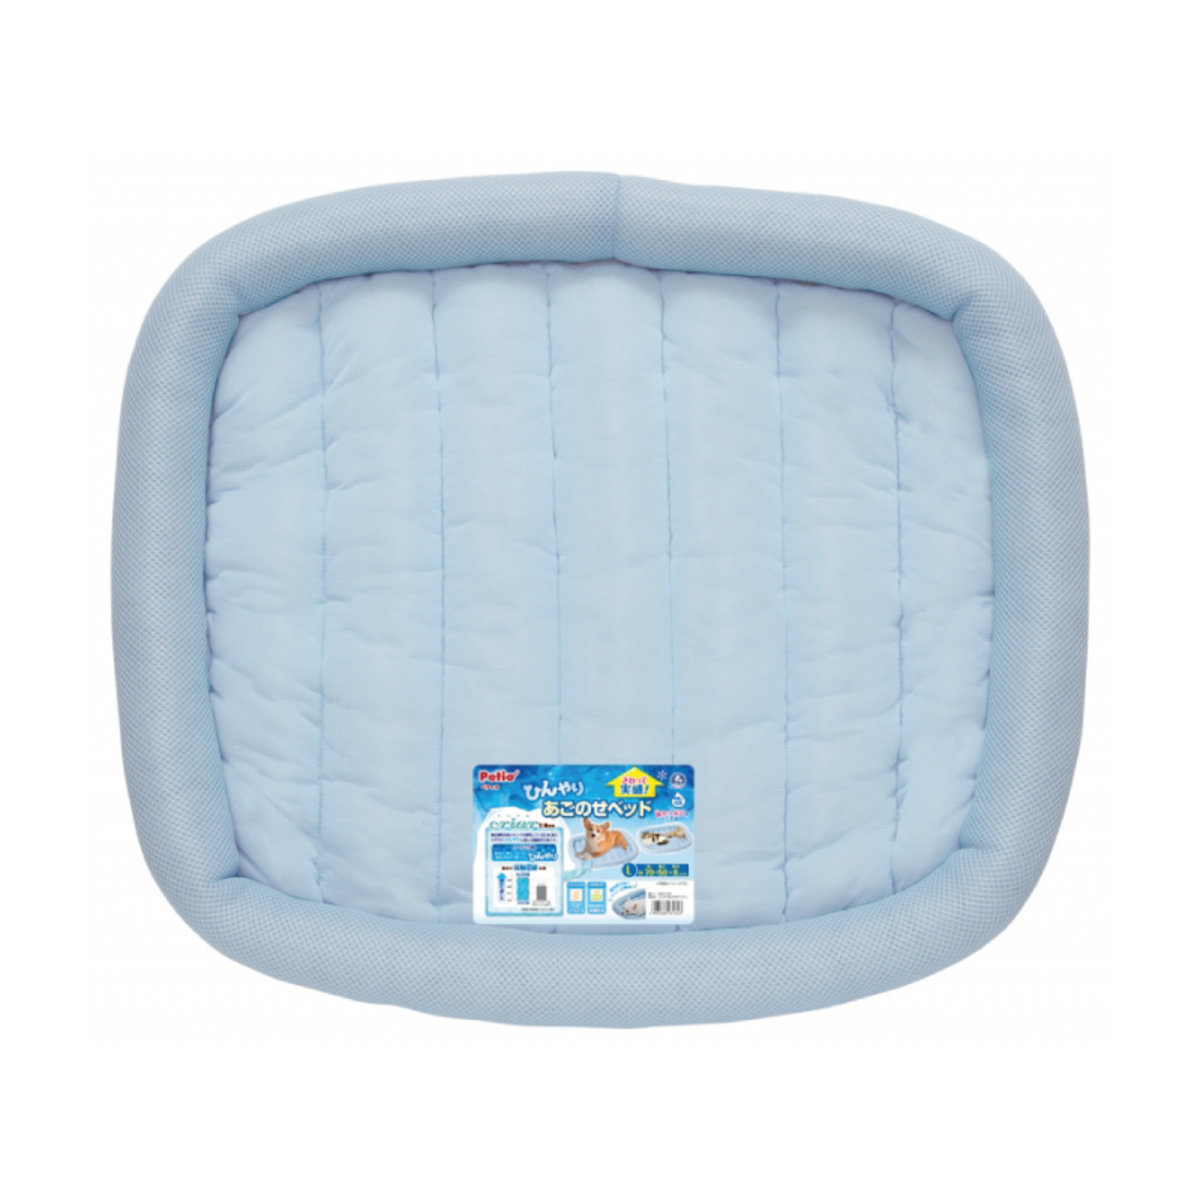 Cool Chin Rest Bed L (W23164)